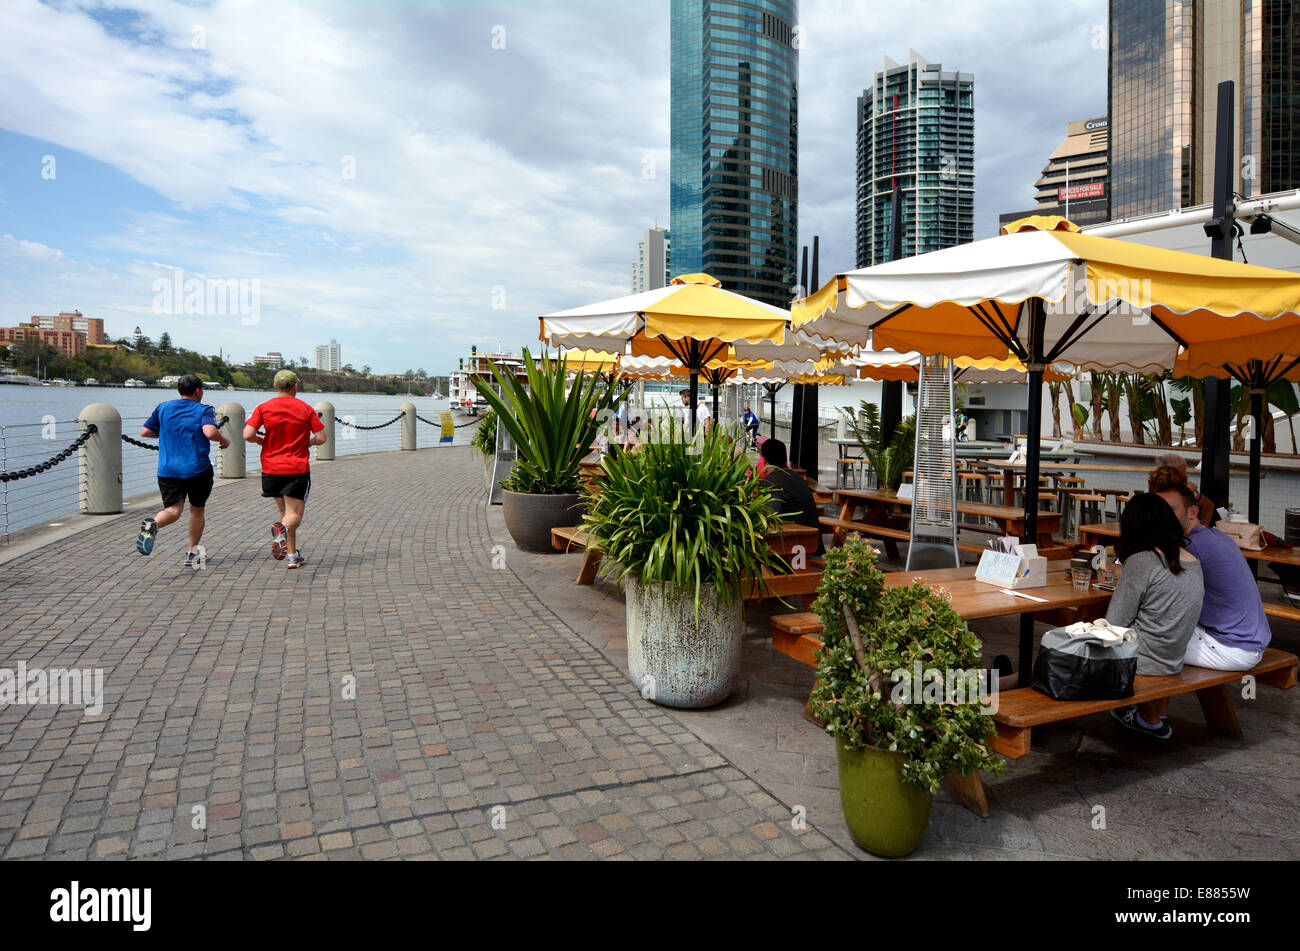 BRISBANE, AUS - SEP 25 2014:Activity at Eagle Street Pier.It is an iconic waterfront precinct with world class dining - Stock Image